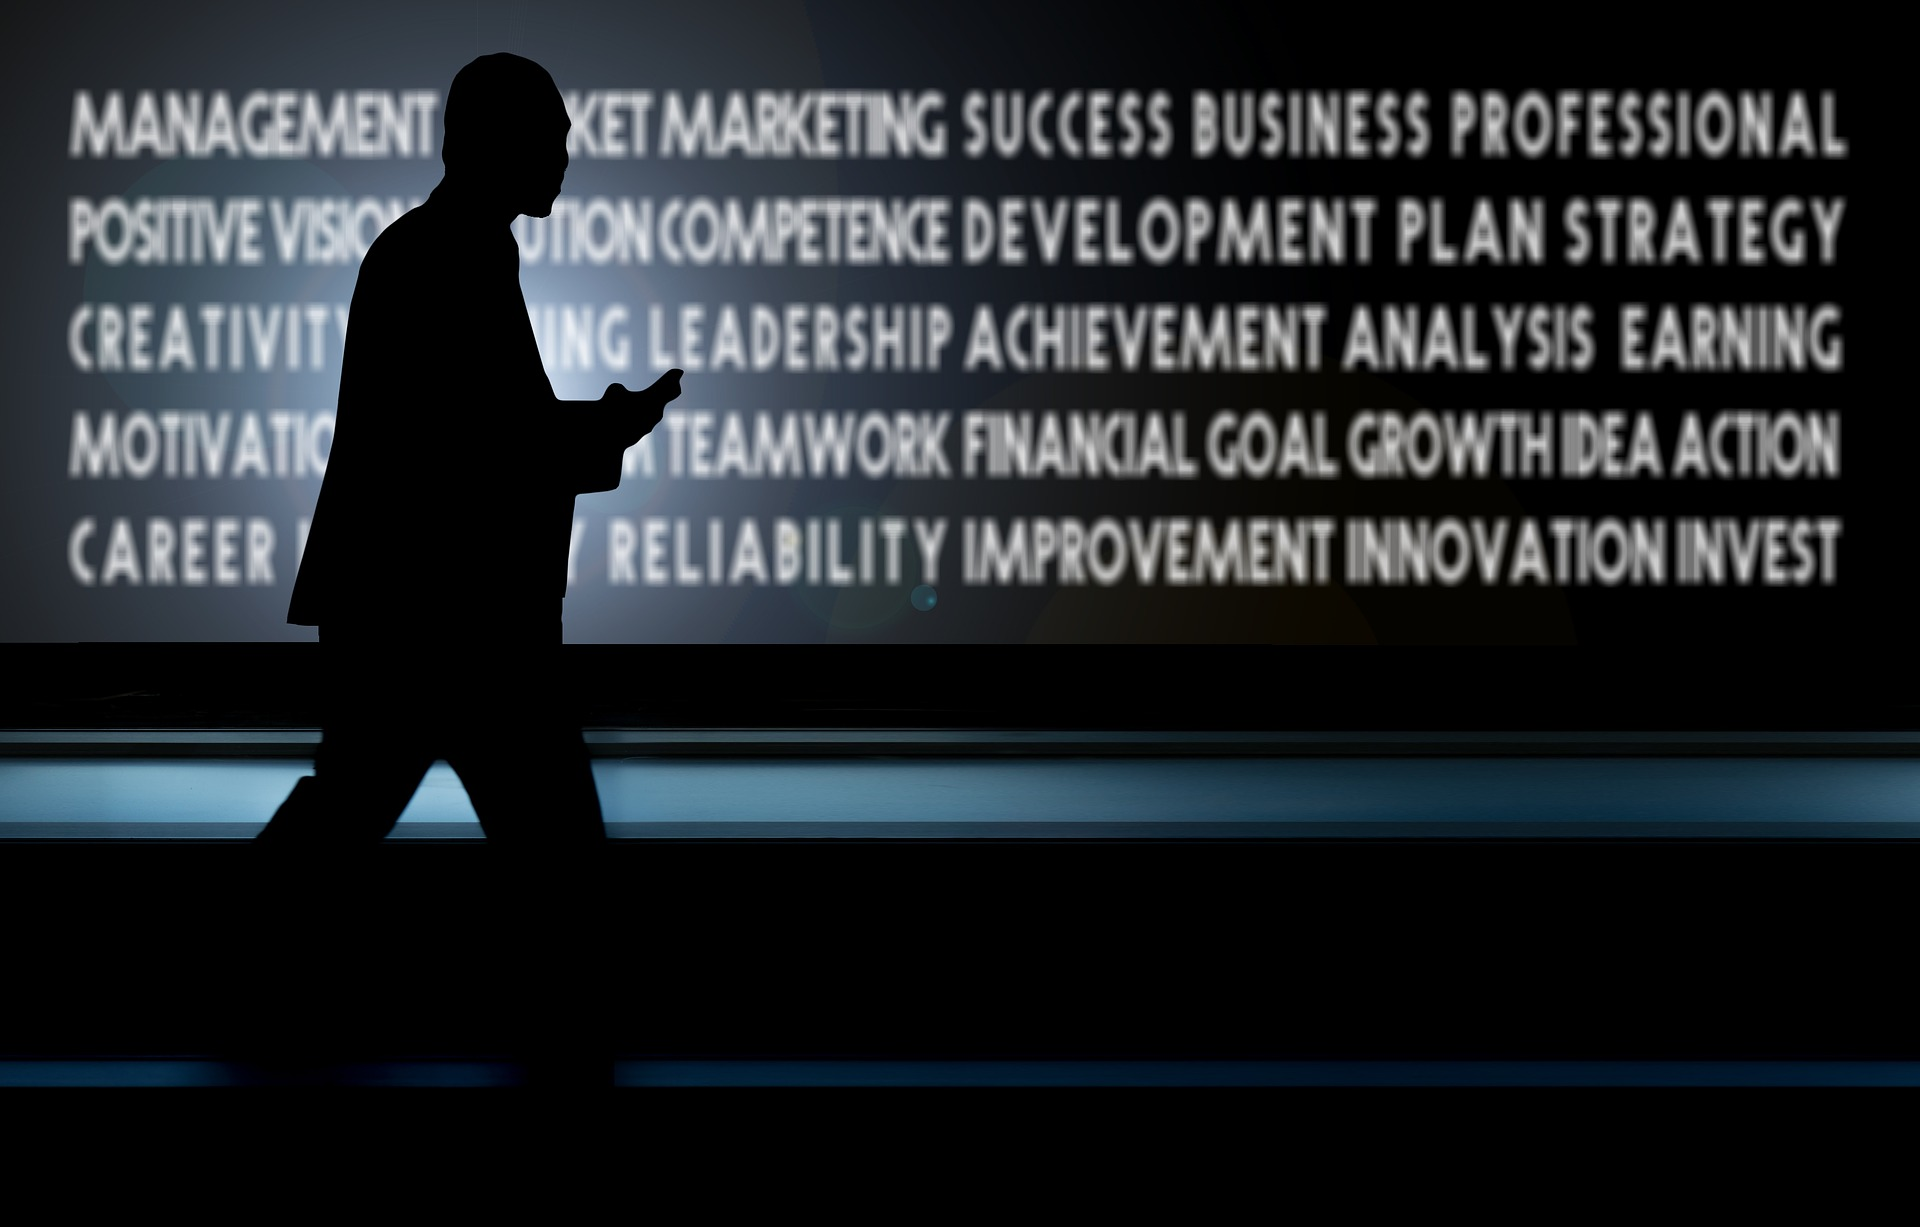 Is Workforce Upskilling Essential for Growth?